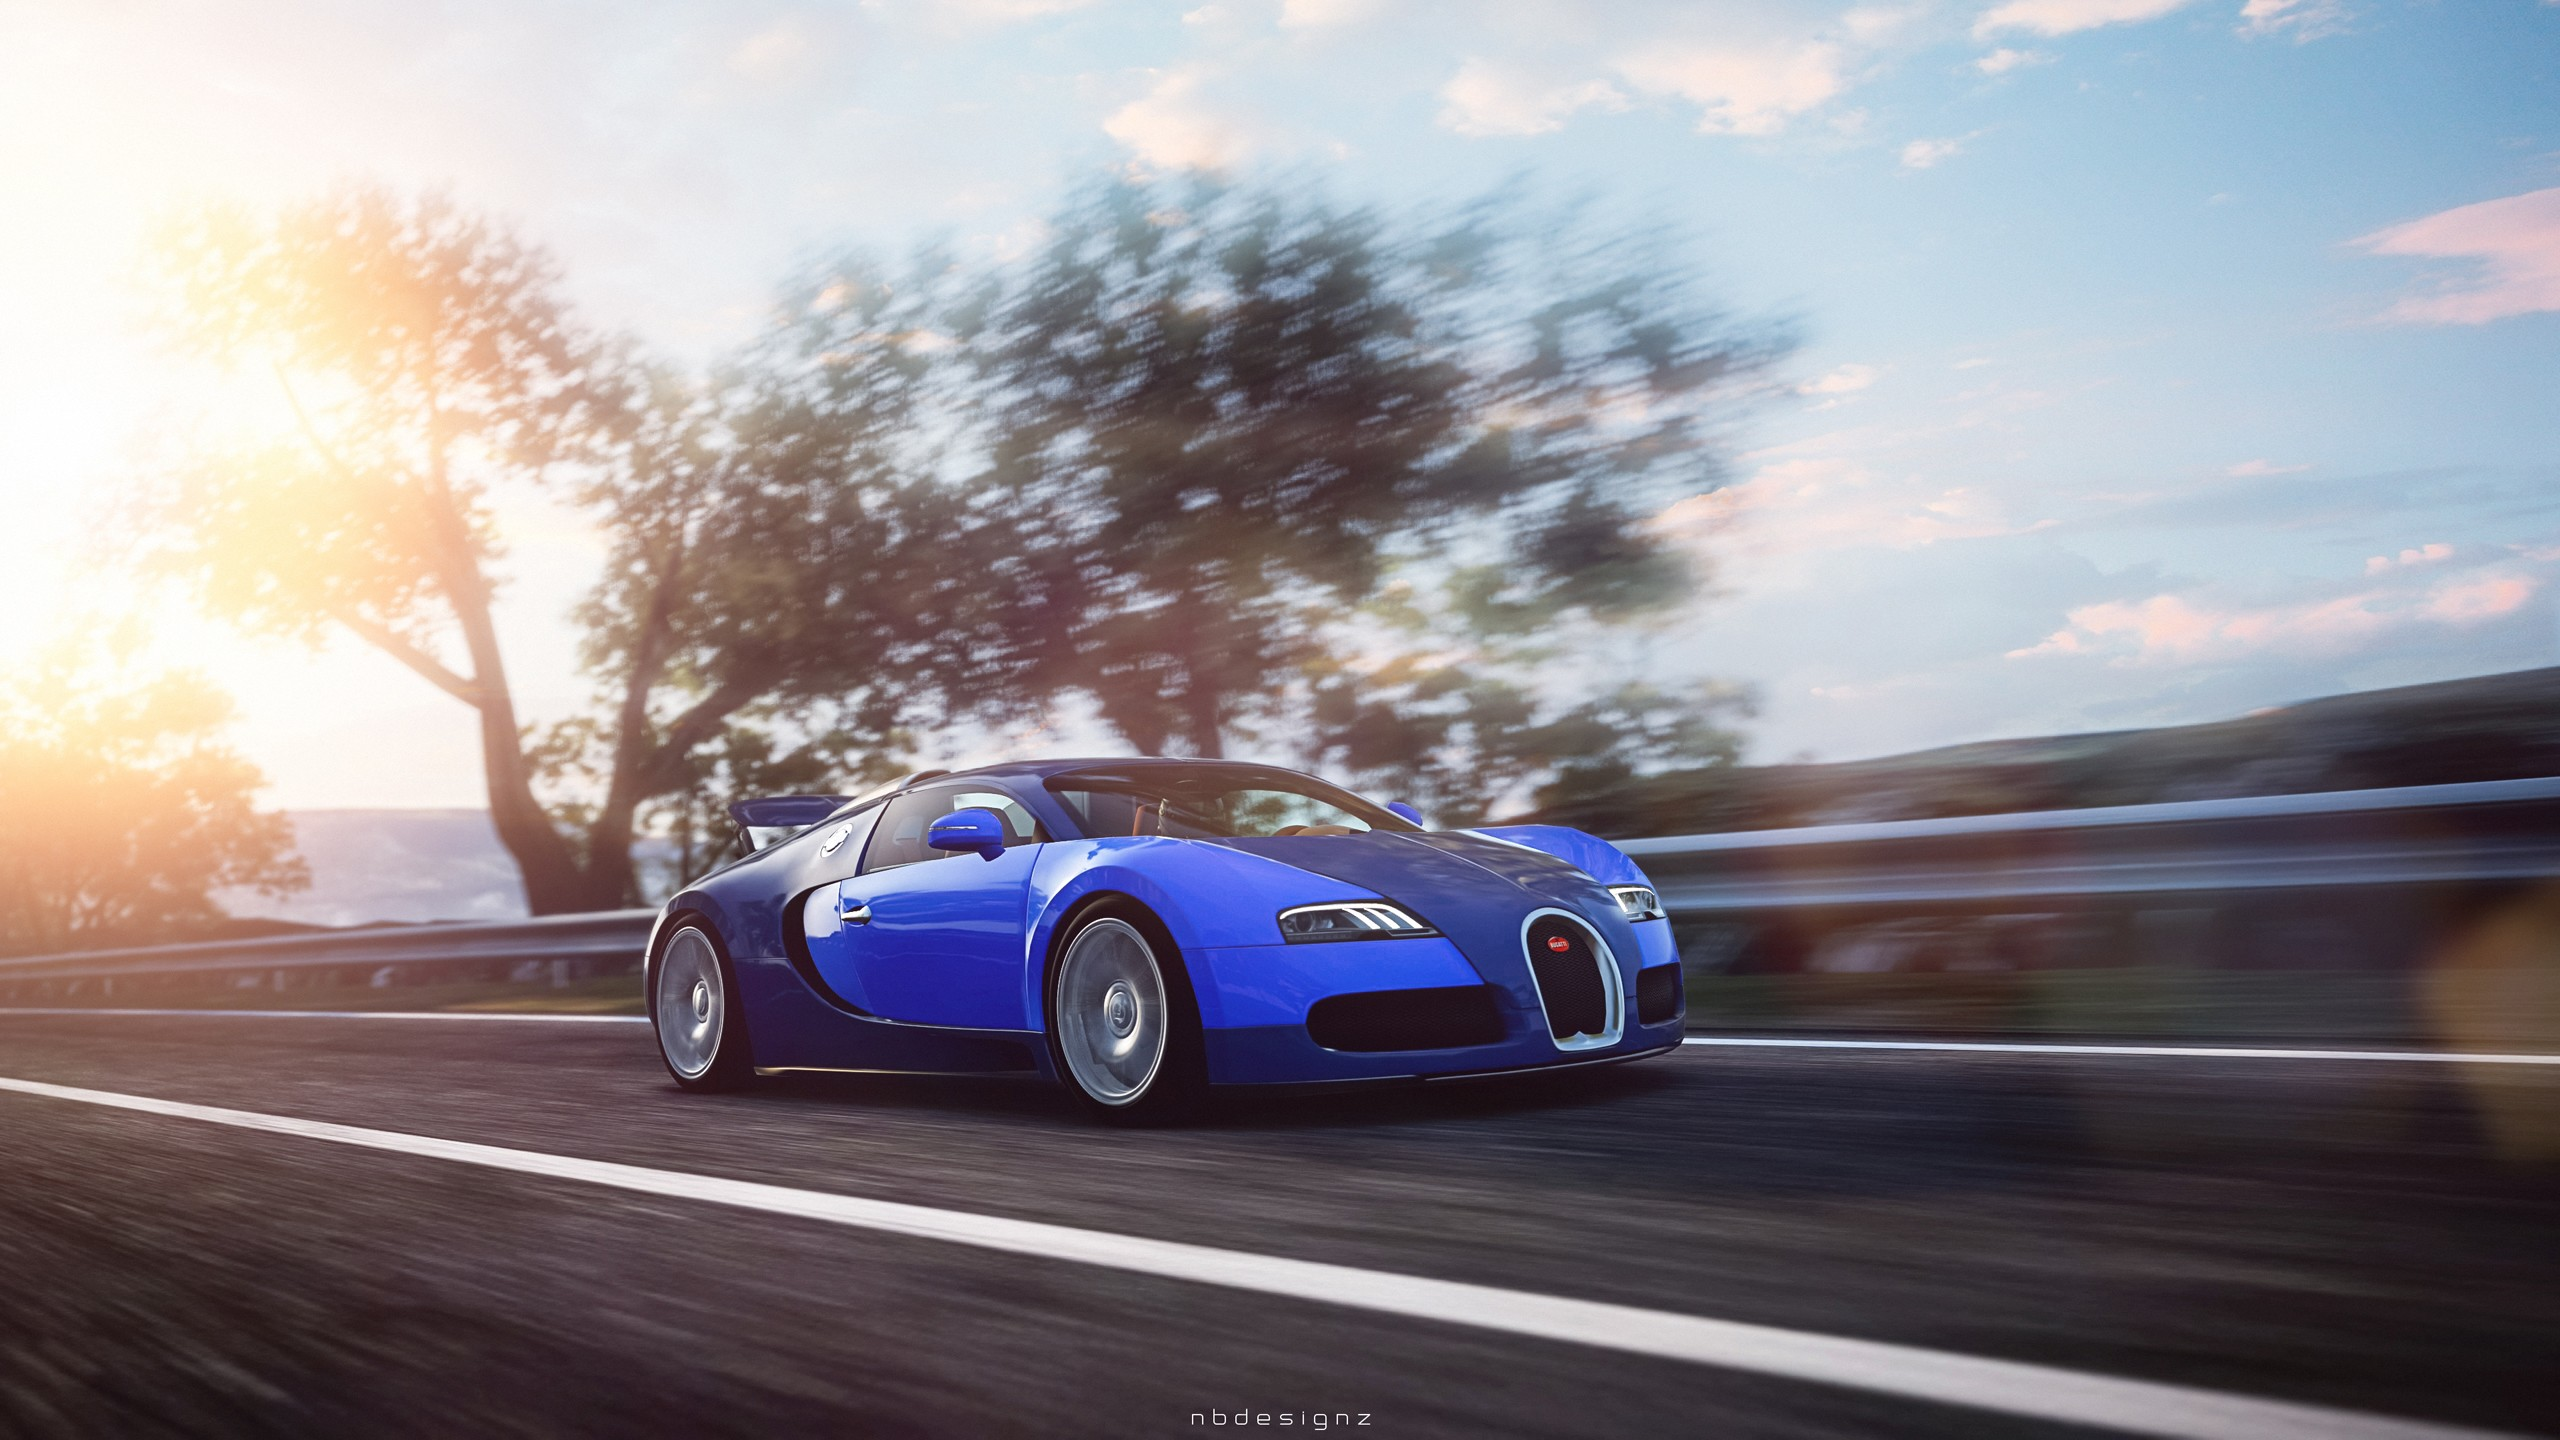 Bugatti Veyron EB 16 4 Gran Turismo 6 Wallpaper HD Car 2560x1440